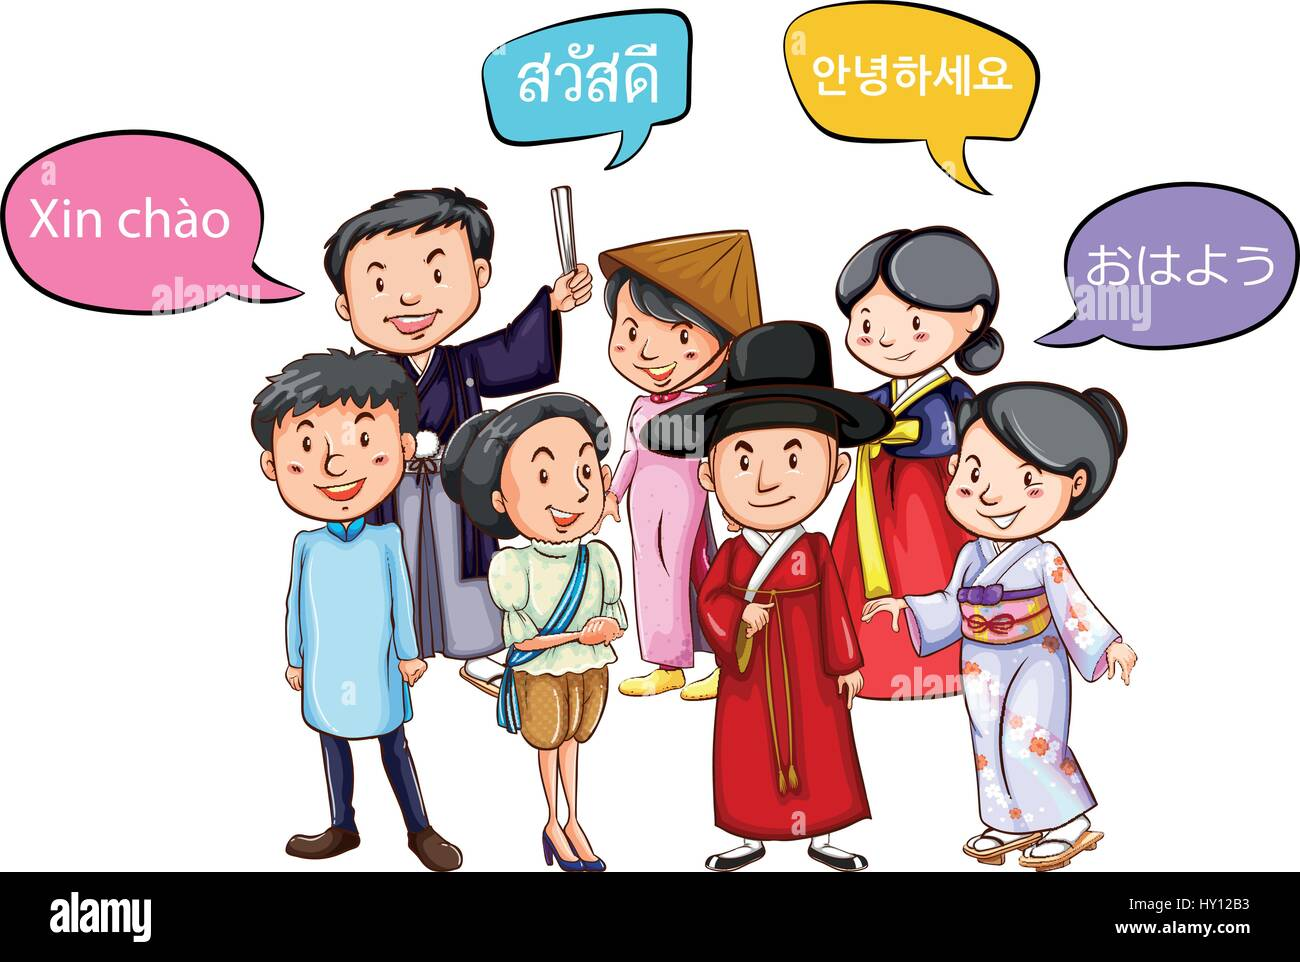 People greeting in different languages illustration stock vector people greeting in different languages illustration kristyandbryce Image collections